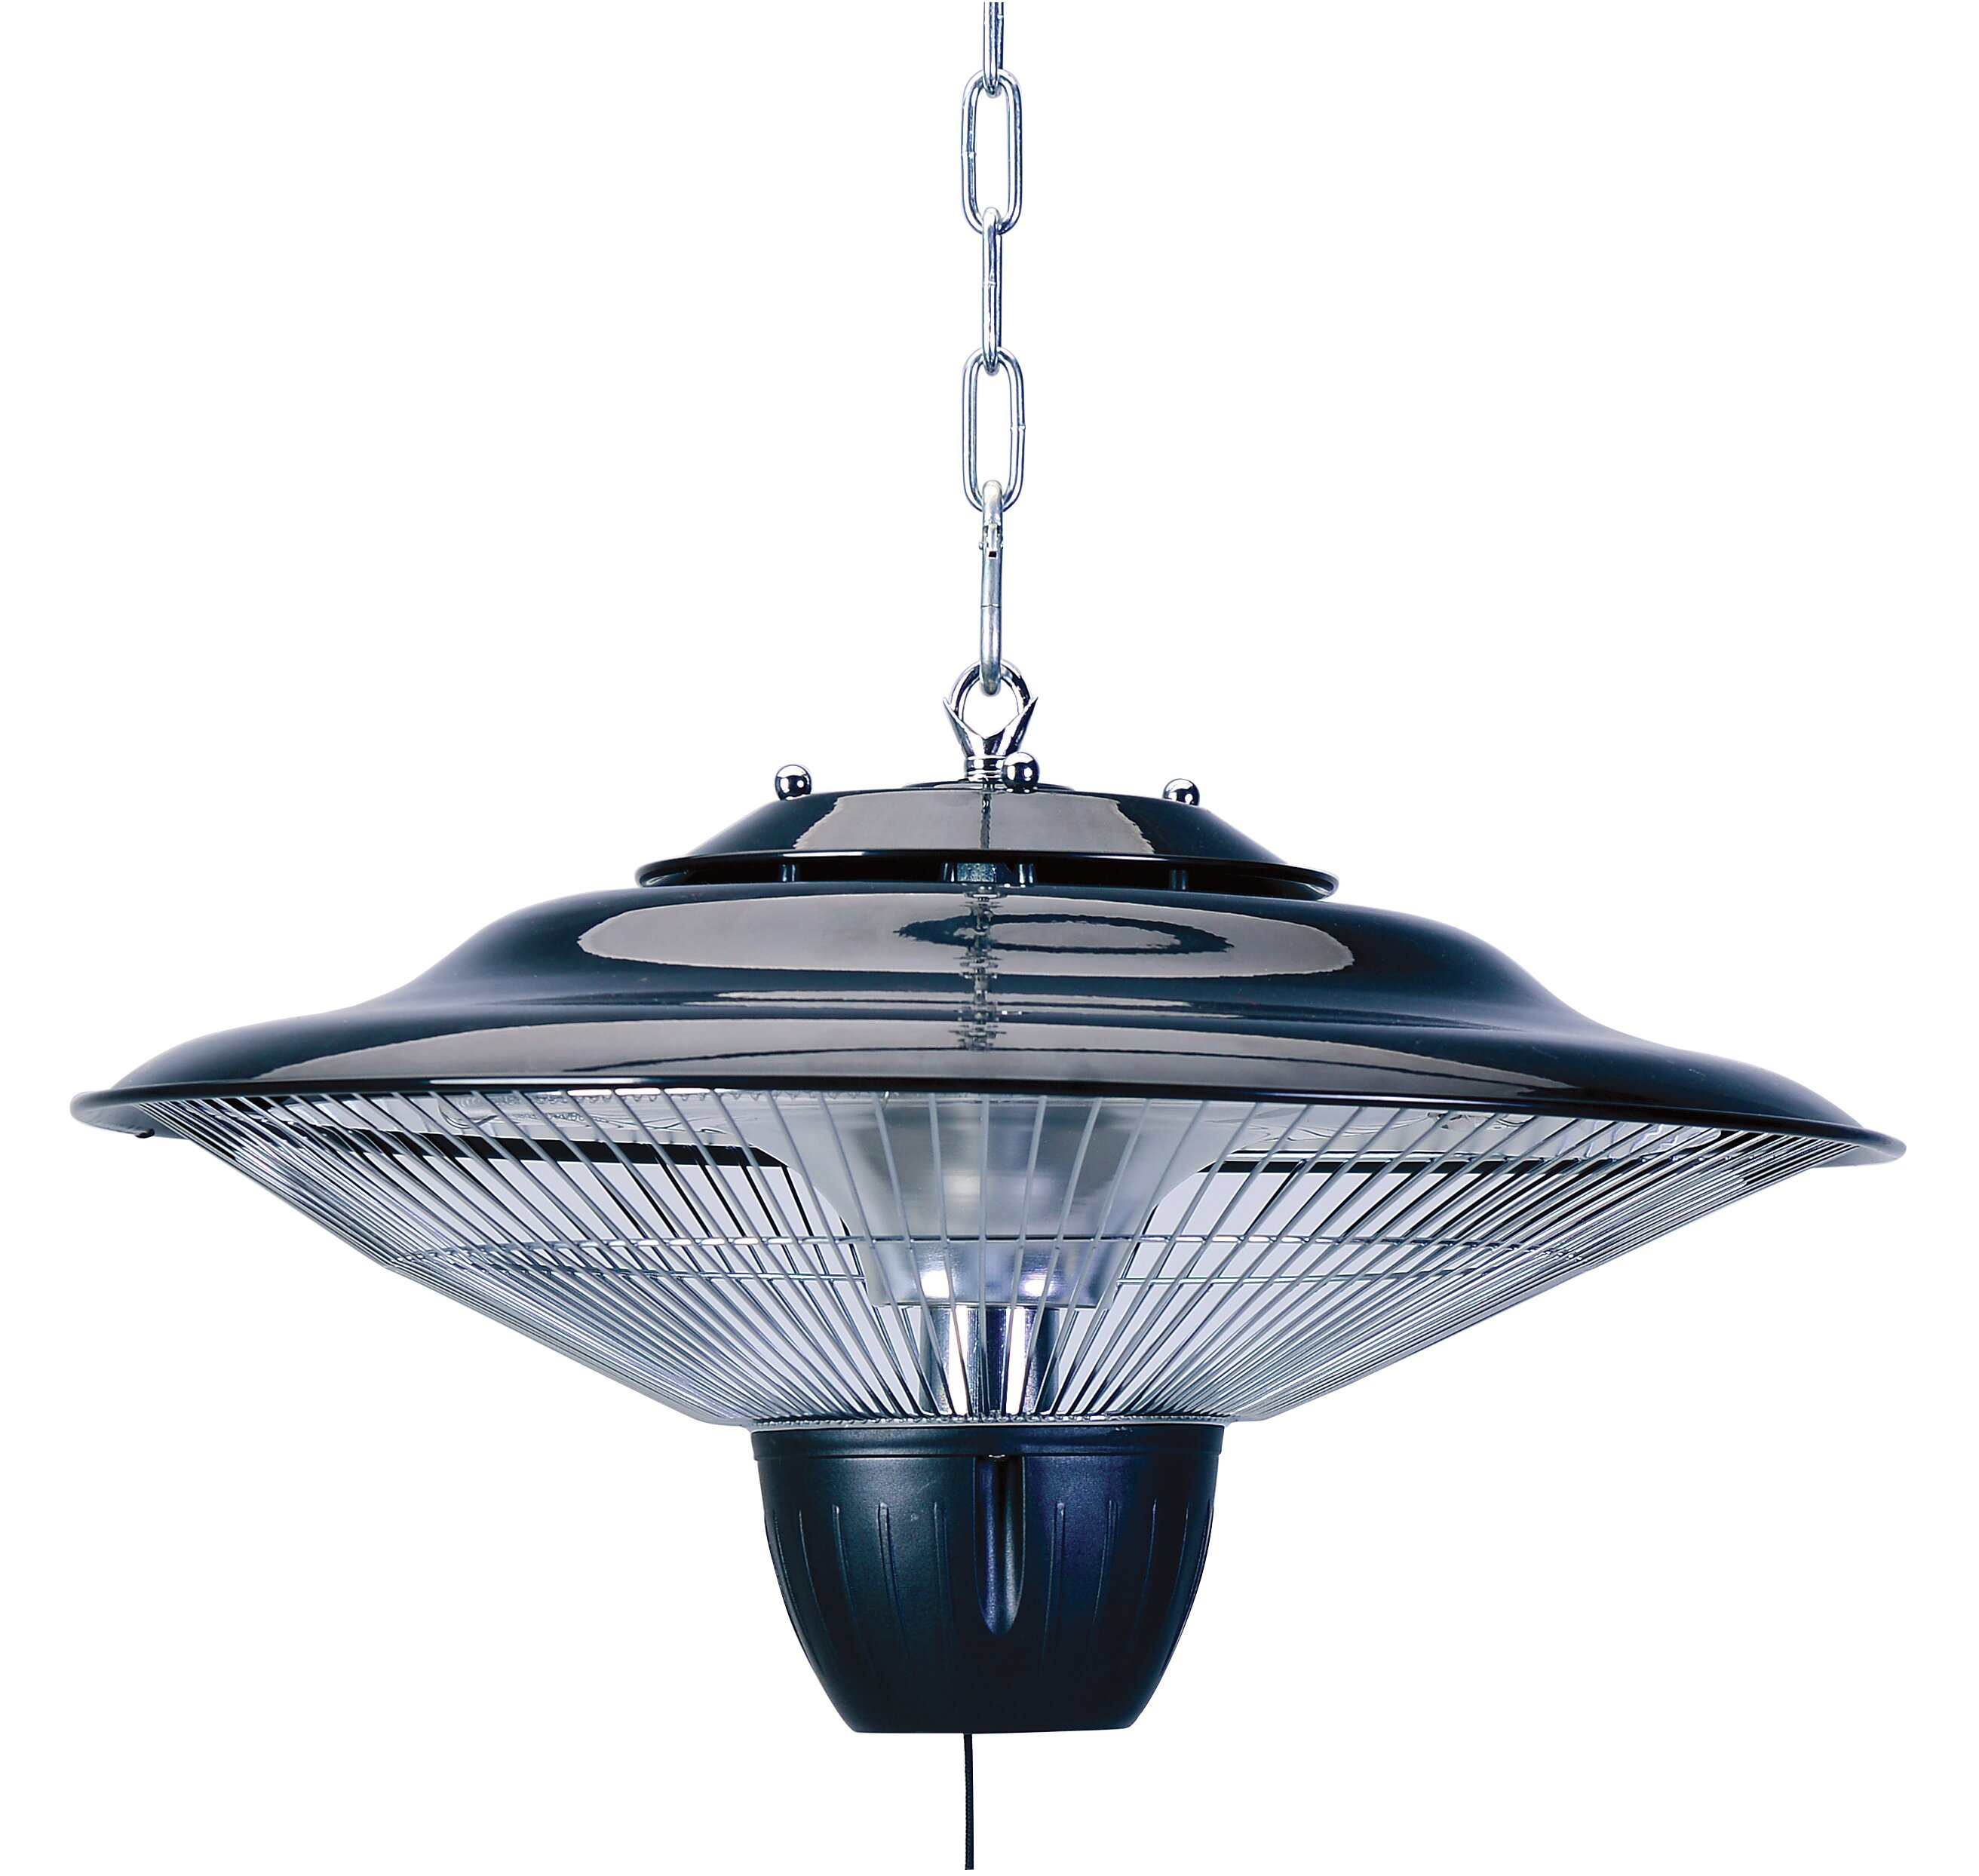 Ceiling Mounted Forced Air Propane Heater Review Home Co